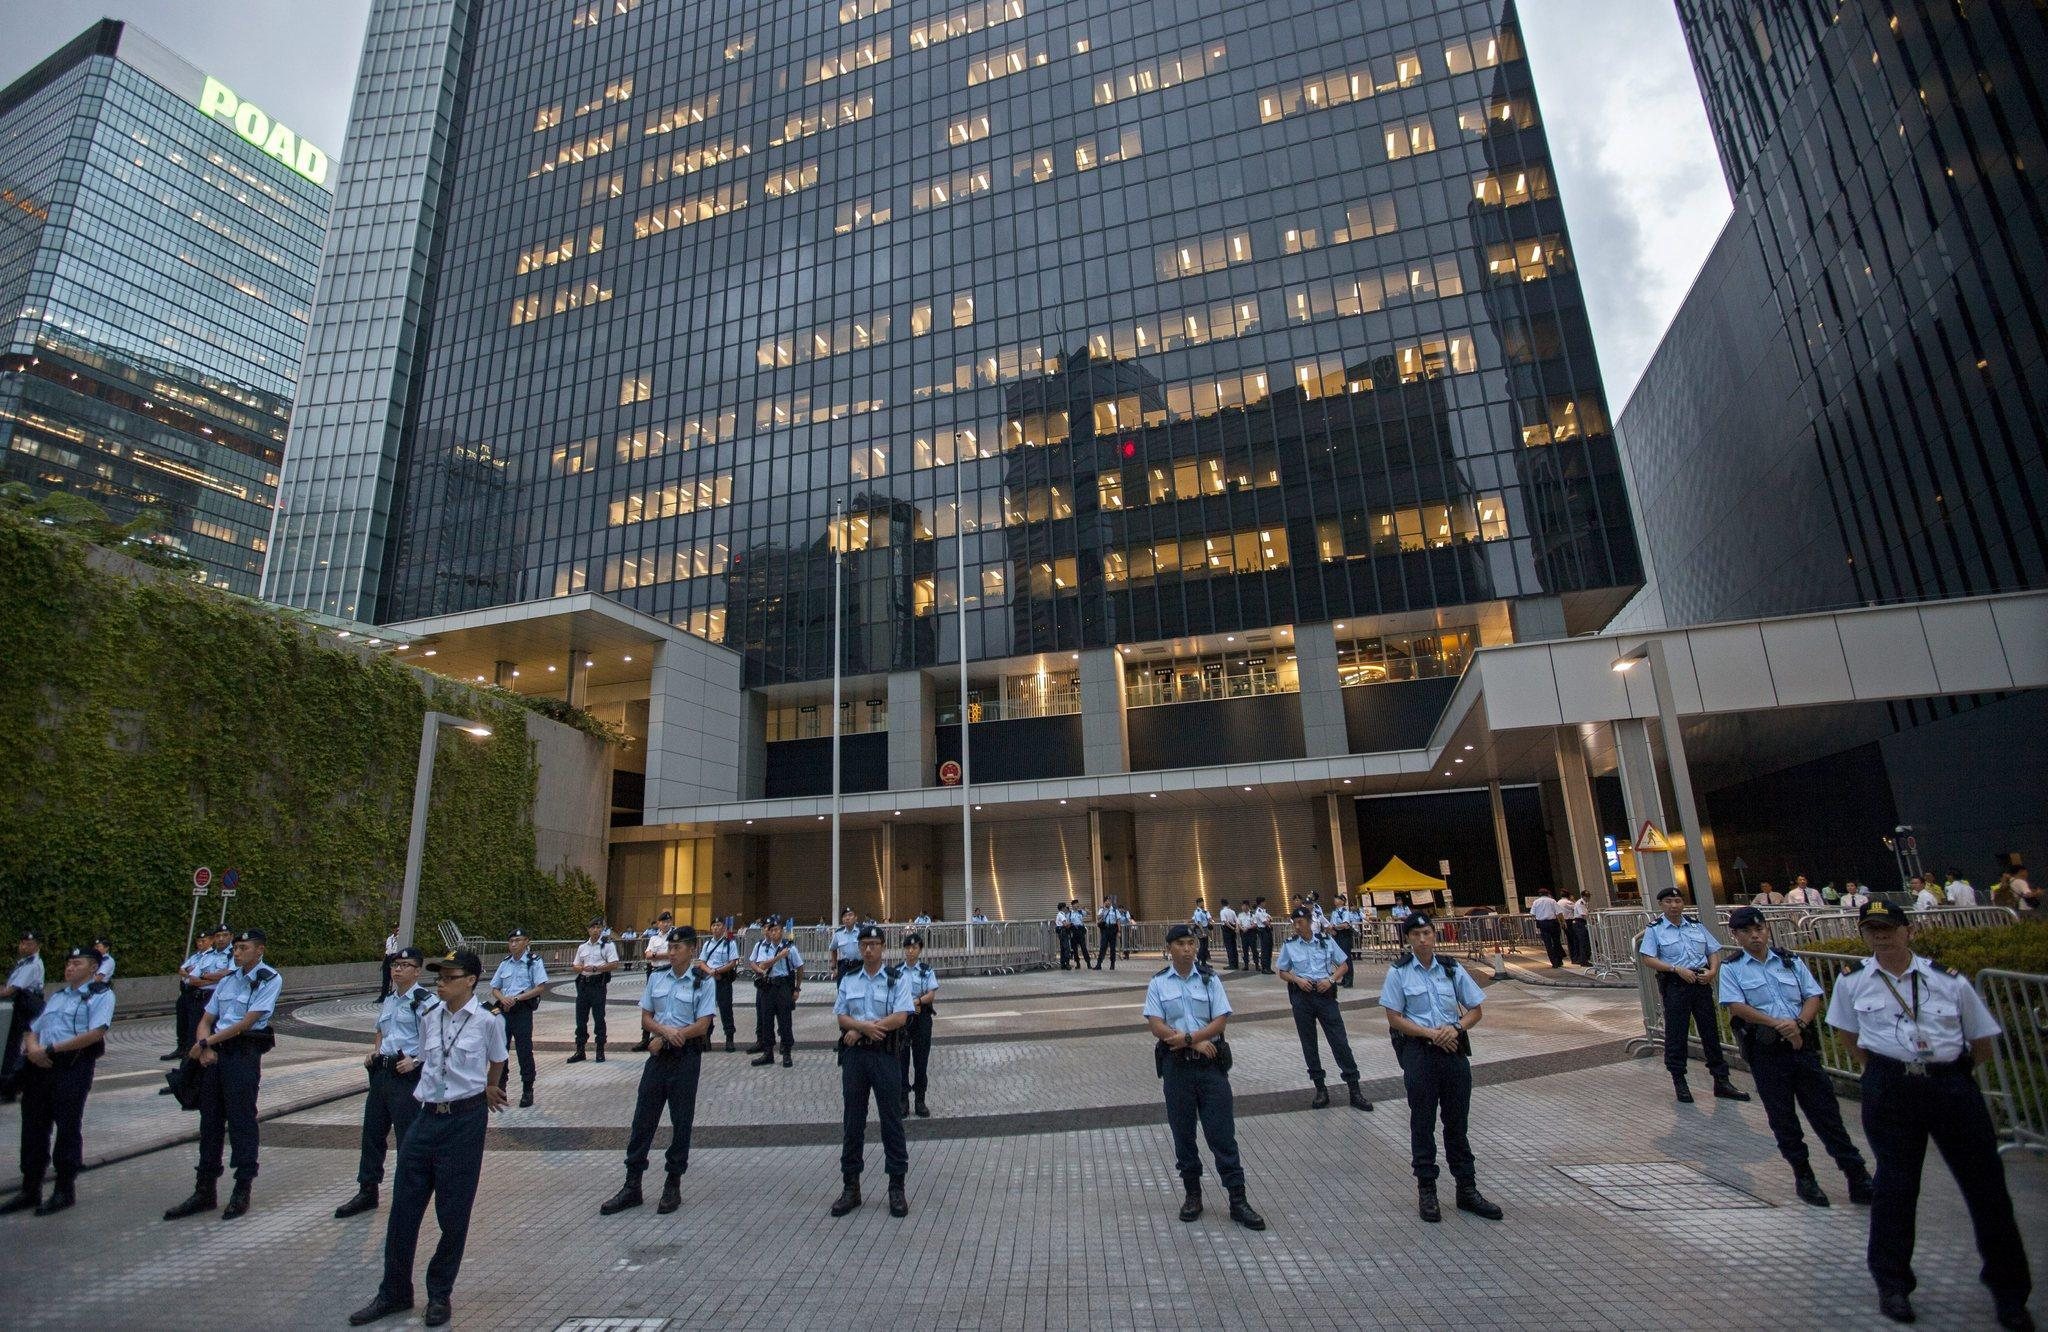 Police stand guard outside the Hong Kong government headquarters as hundreds of protesters protest the development plan of three new towns in Hong Kong's North East New Territories along the border with China, outside the Hong Kong government headquarters, Hong Kong June 20, 2014.